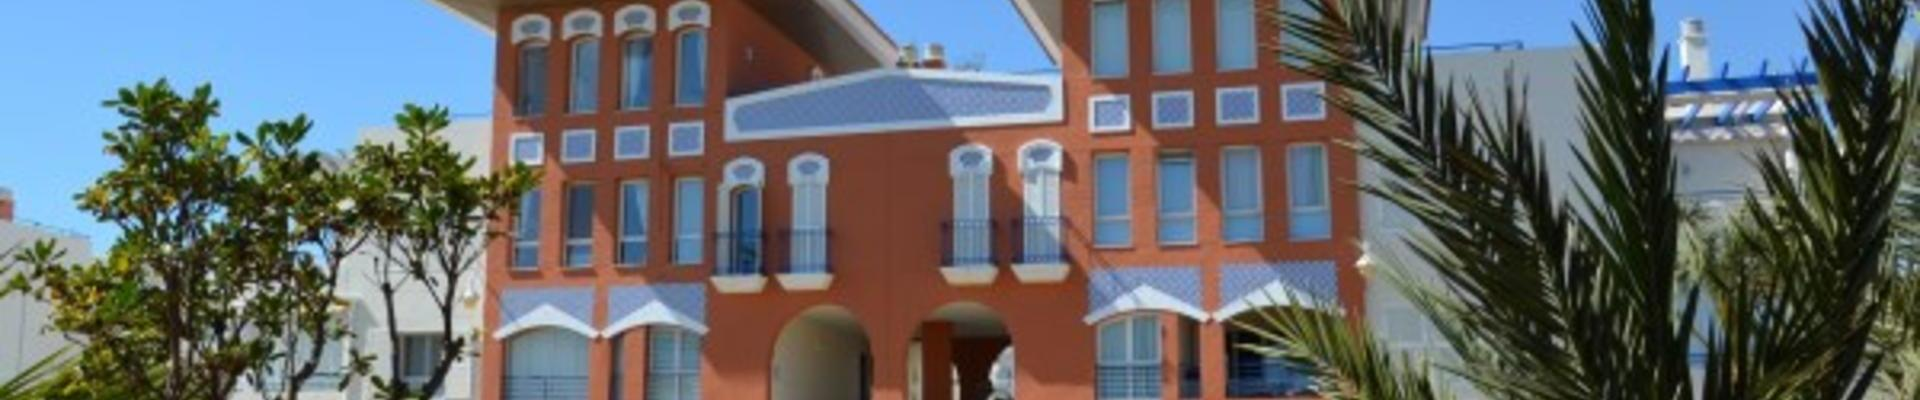 A1373: 3 Bedroom Apartment for Sale